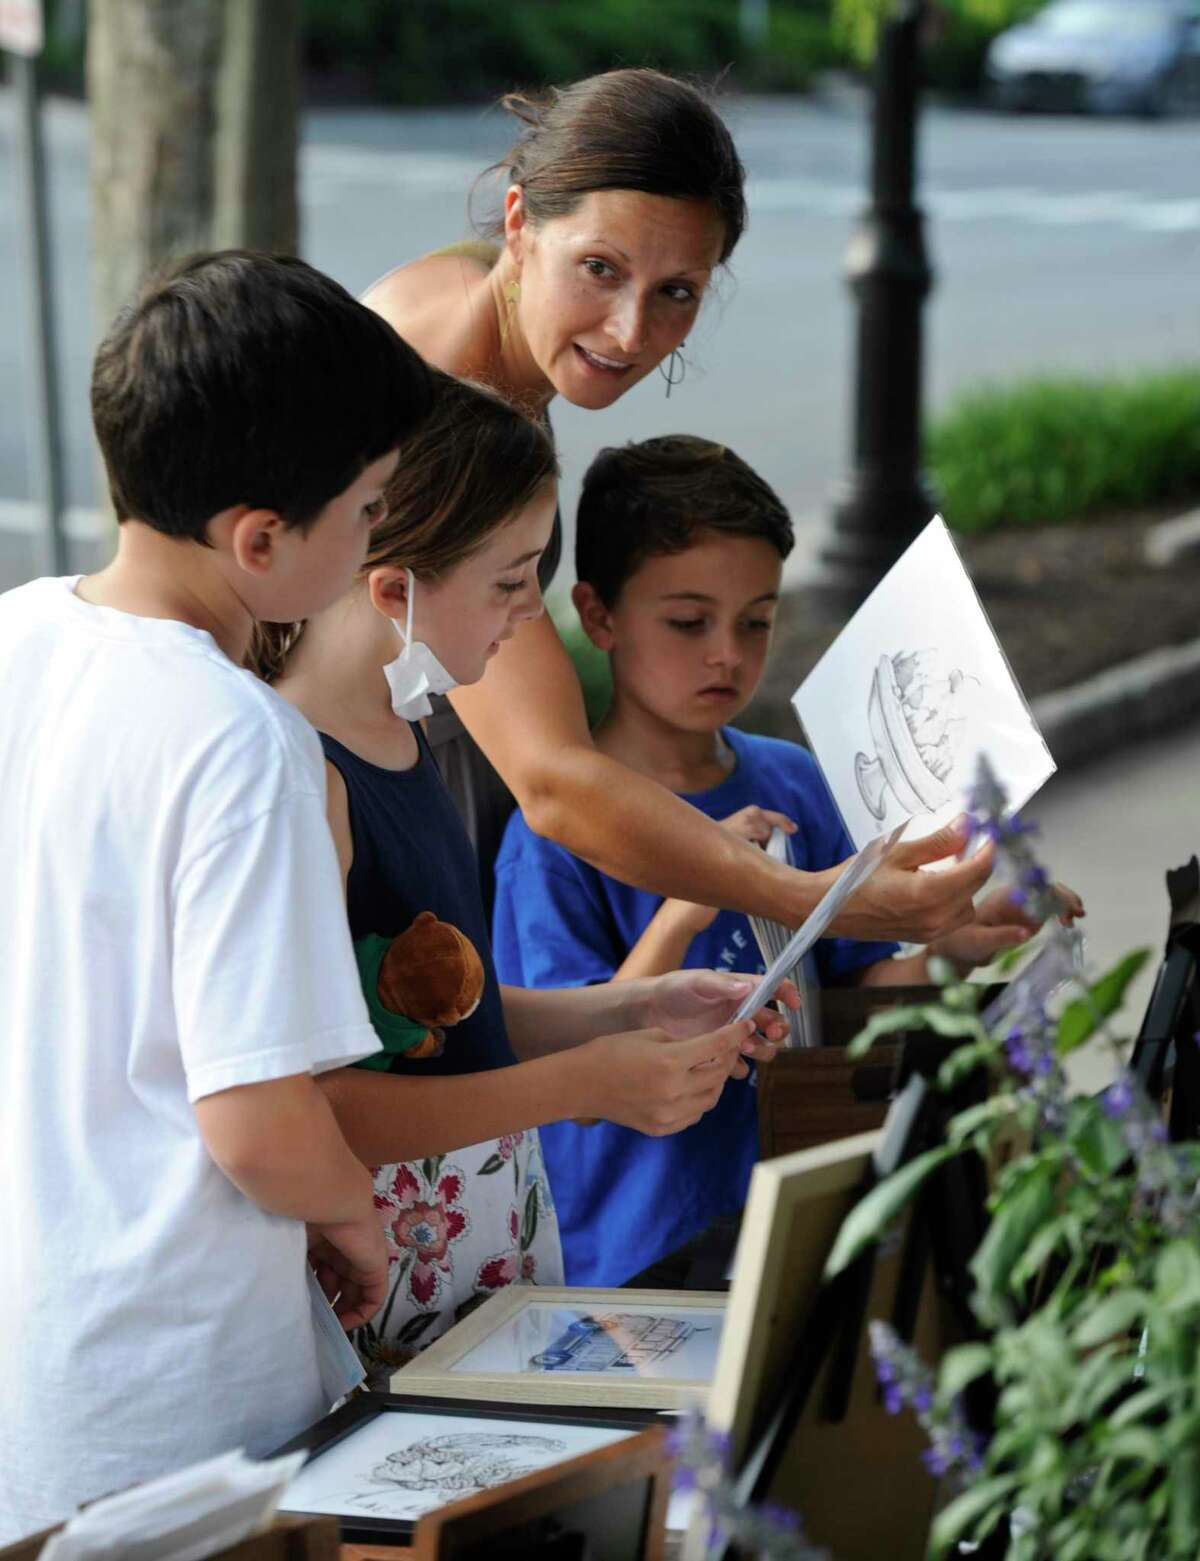 Cassidy Bluhm, of Ridgefield, looks at work by artist Steve Habersang with her children, Aiden, left, age 12, Amelie, age 10 and Emery, age, 7, at the Ridgefield Guild of Artists eighth annual Art Walk, Friday, August 27, 2021, in Ridgefield, Conn.